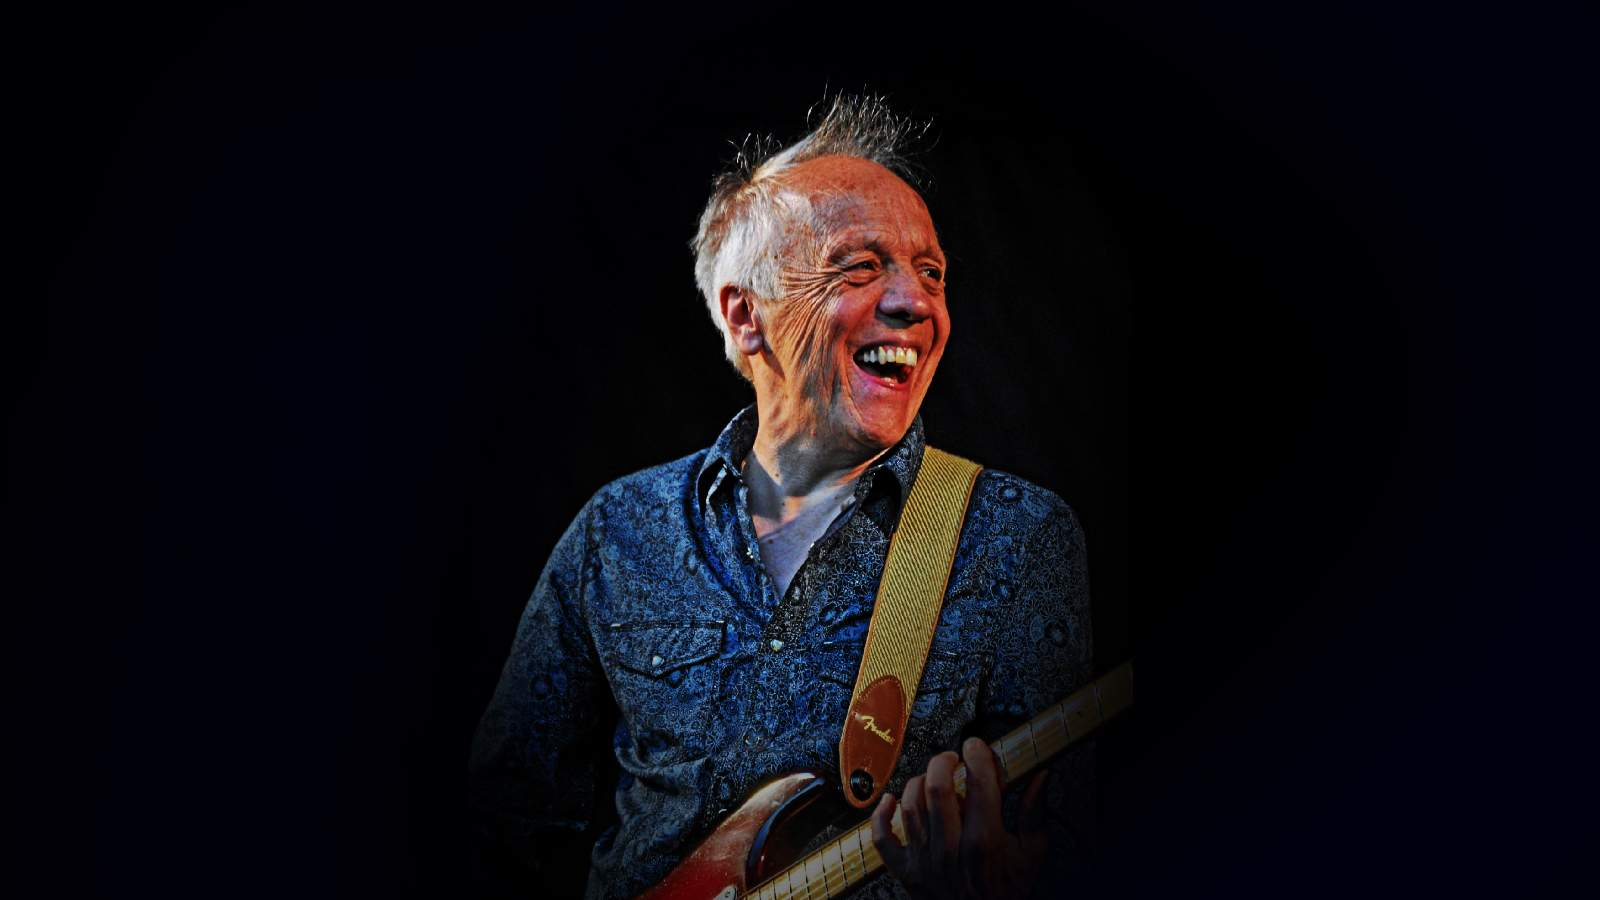 Robin Trower (Rescheduled from 10/16/2020)